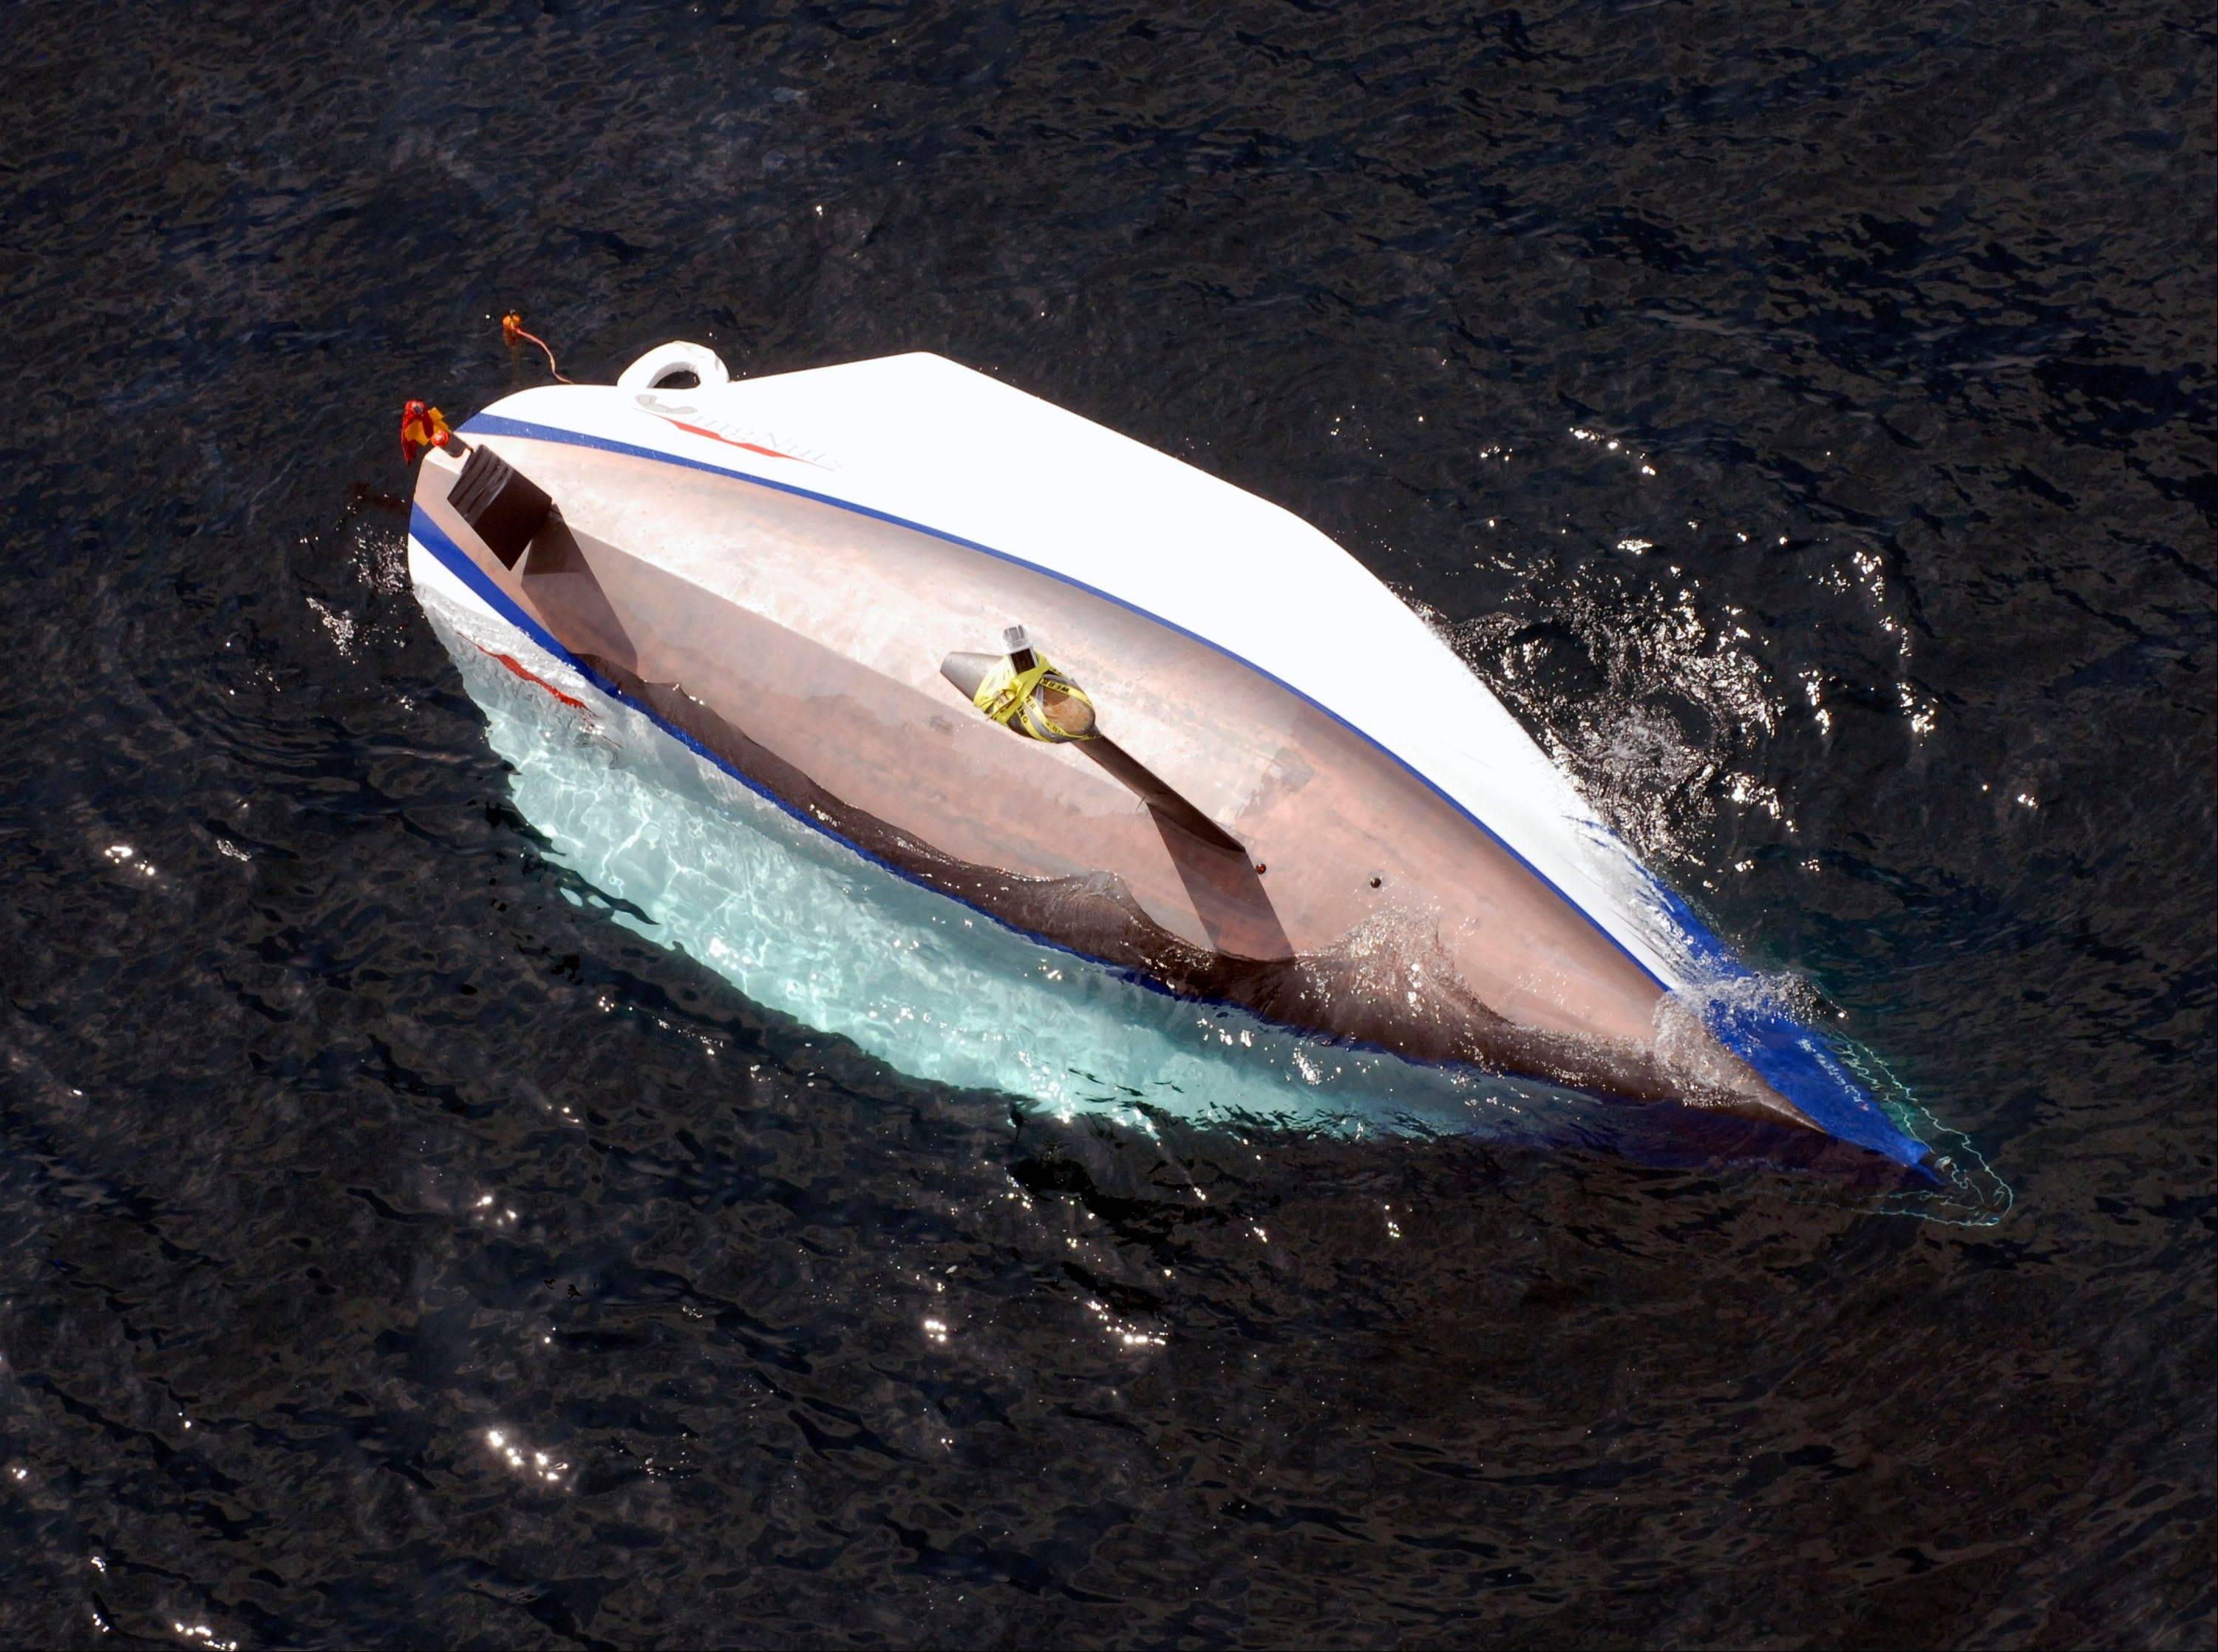 The sailboat WingNuts floats upside down in Lake Michigan on Monday after it capsized during the annual Chicago-to-Mackinac sailing race. Two crew members died.